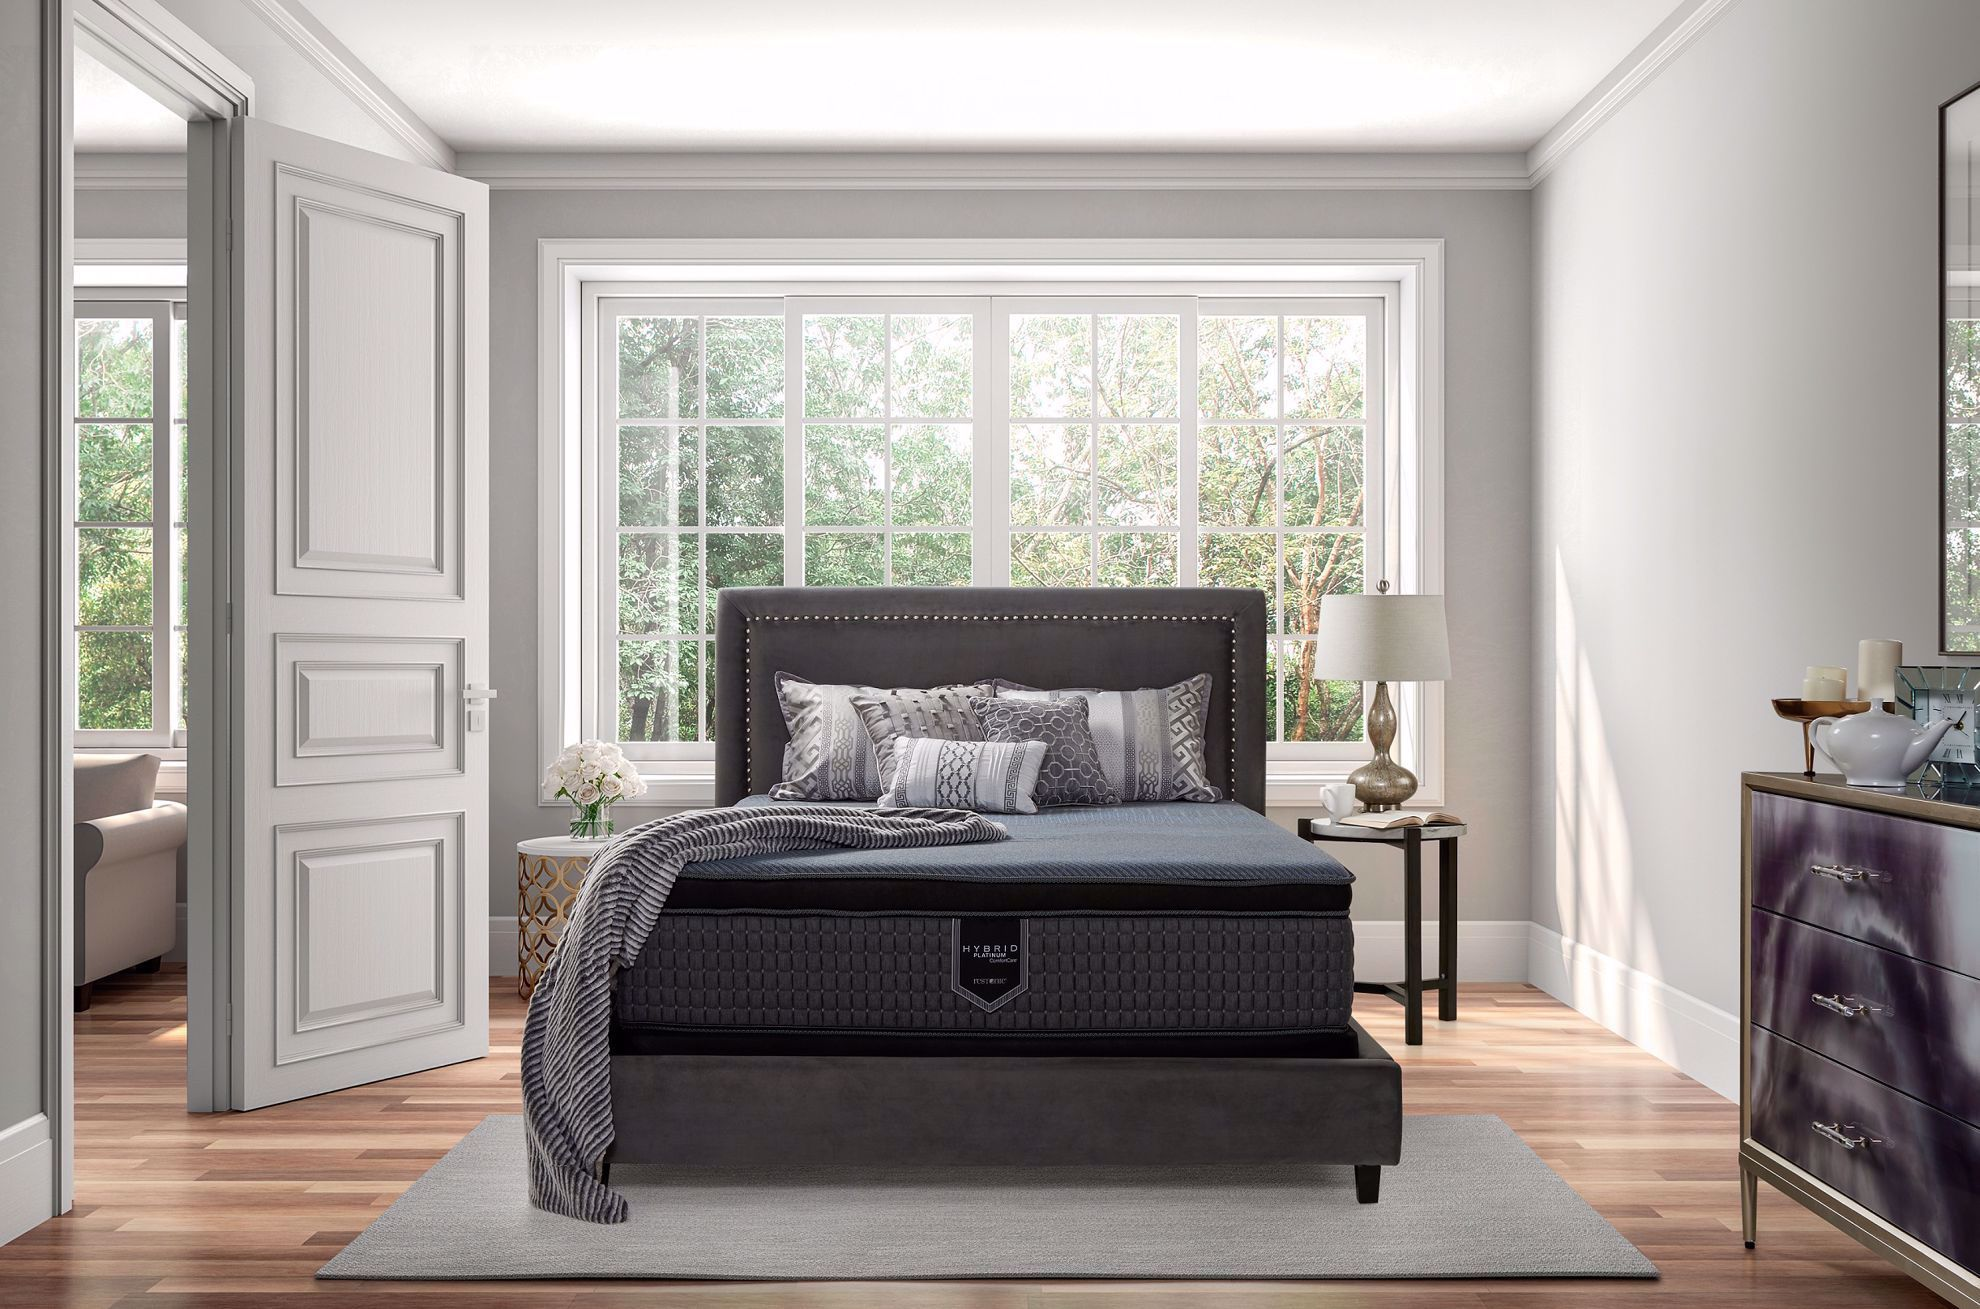 Picture of Restonic Endure Firm EuroTop King Mattress